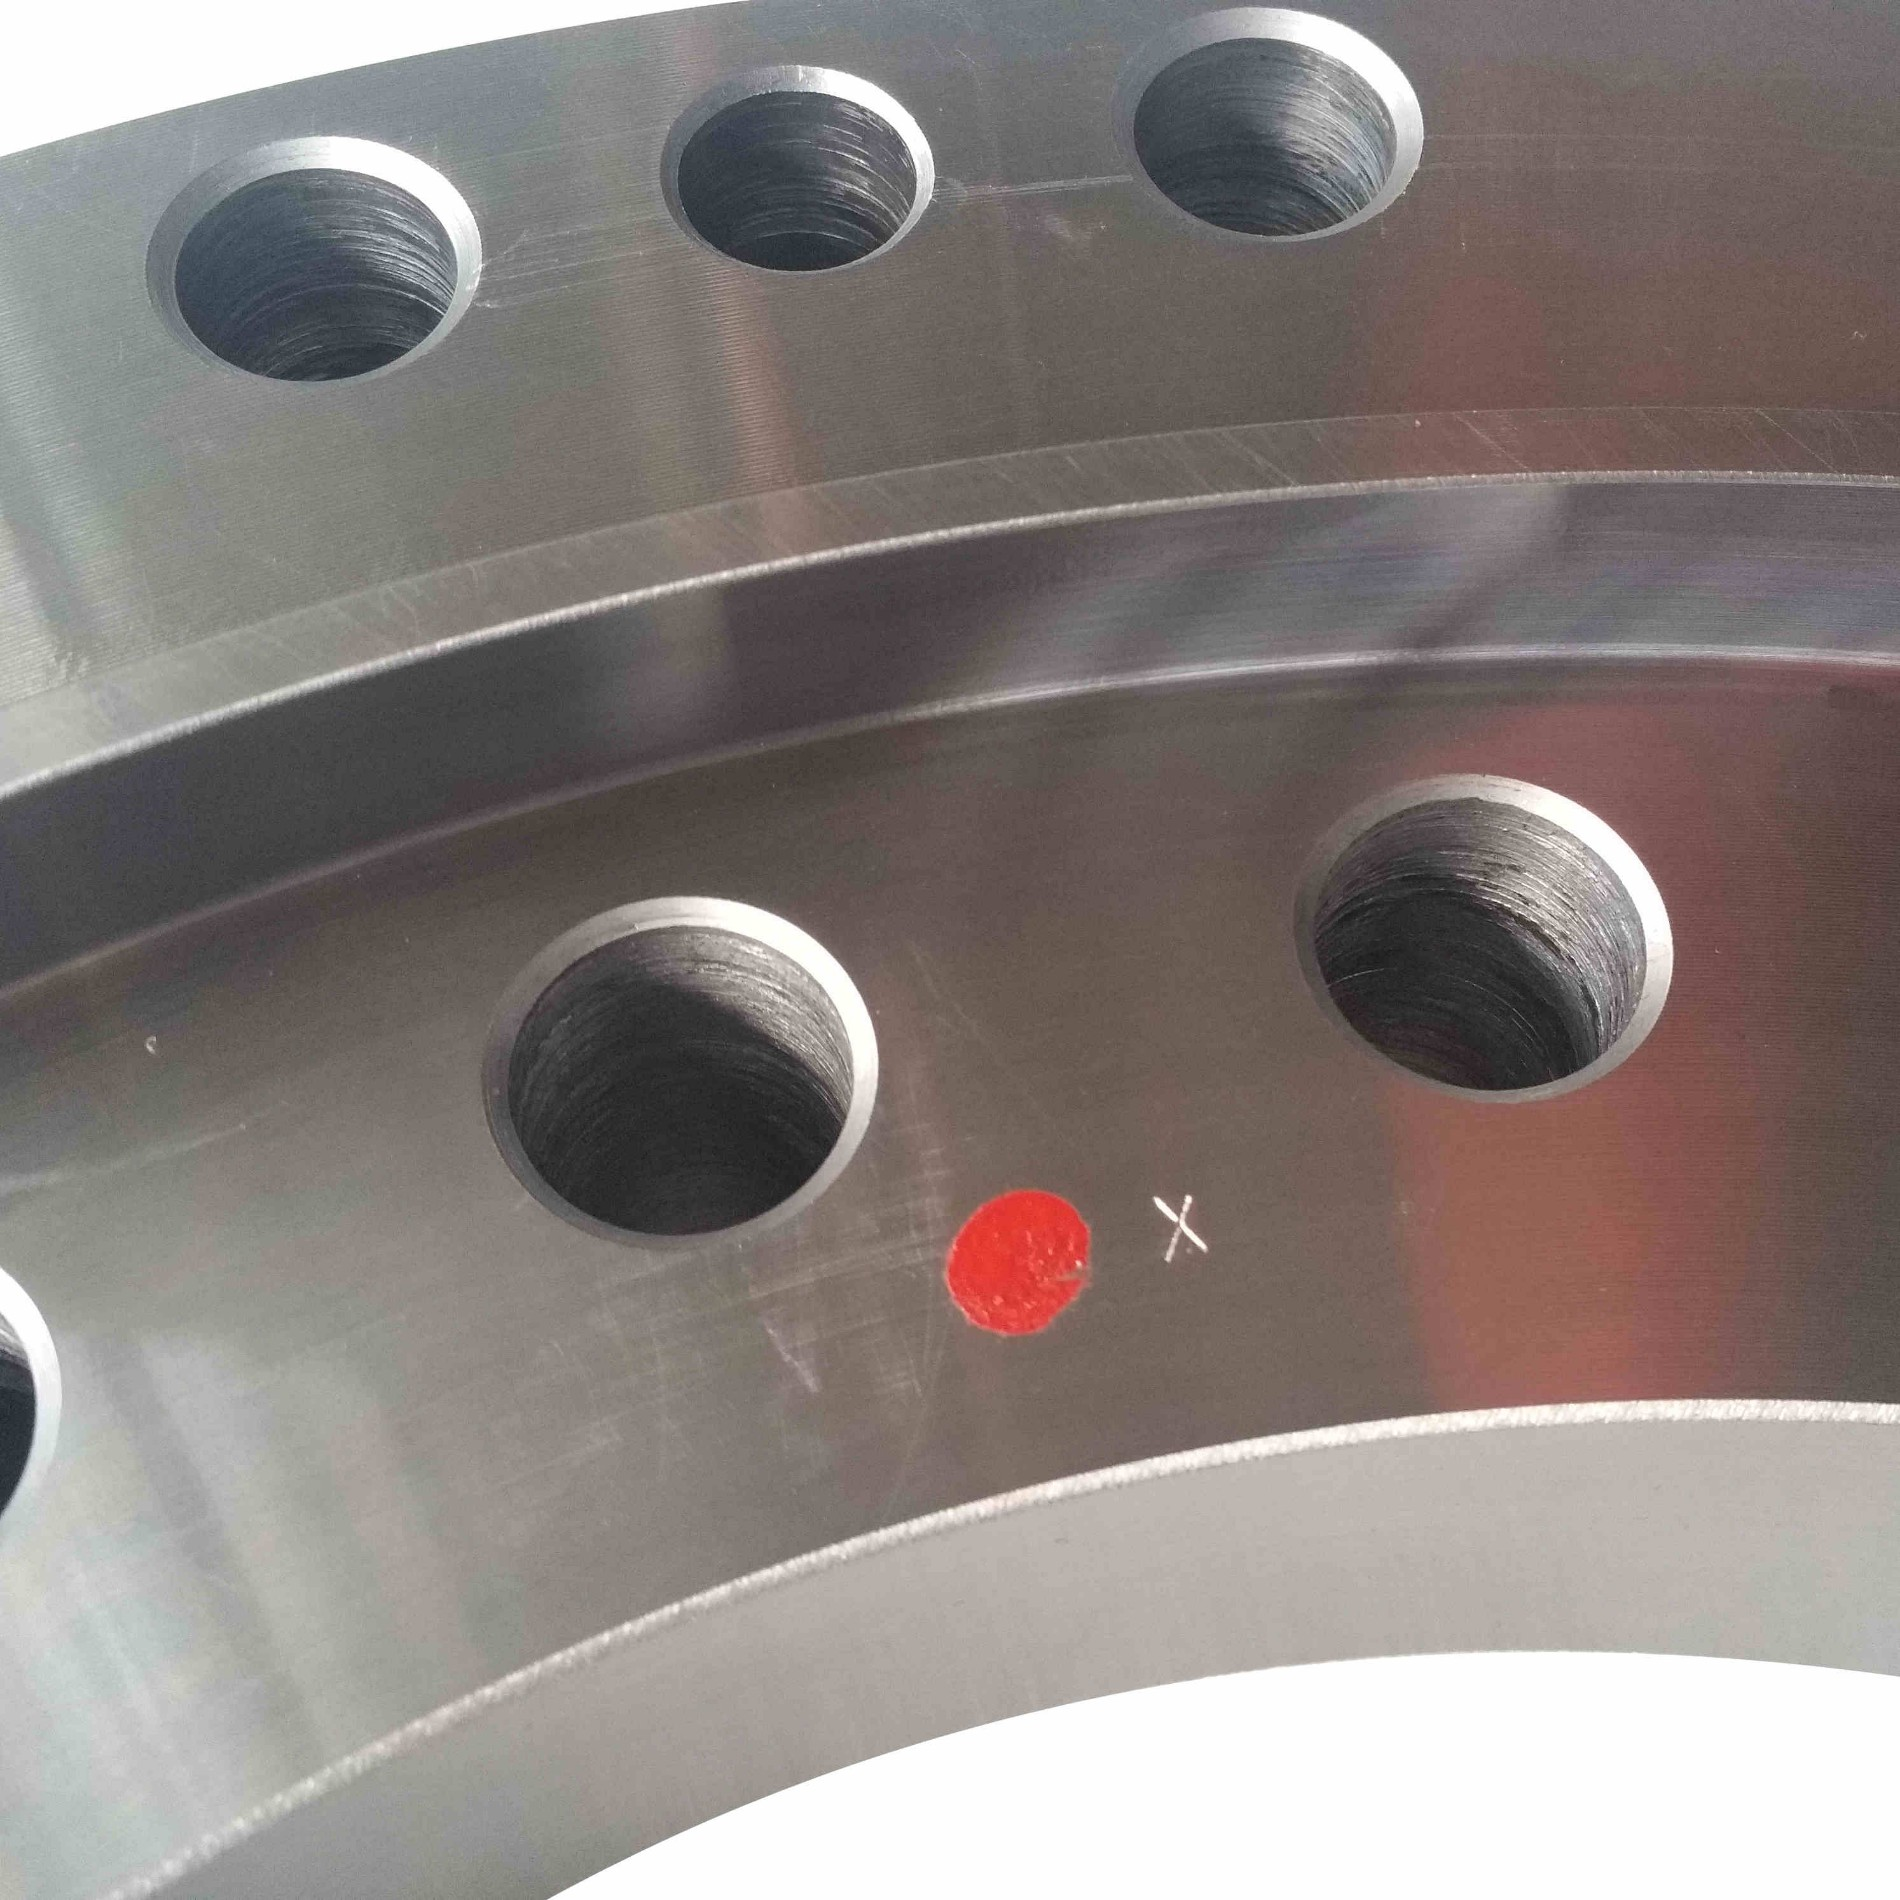 Slewing Ring Turntable For Swivelling Mechanism Manufacturers, Slewing Ring Turntable For Swivelling Mechanism Factory, Supply Slewing Ring Turntable For Swivelling Mechanism